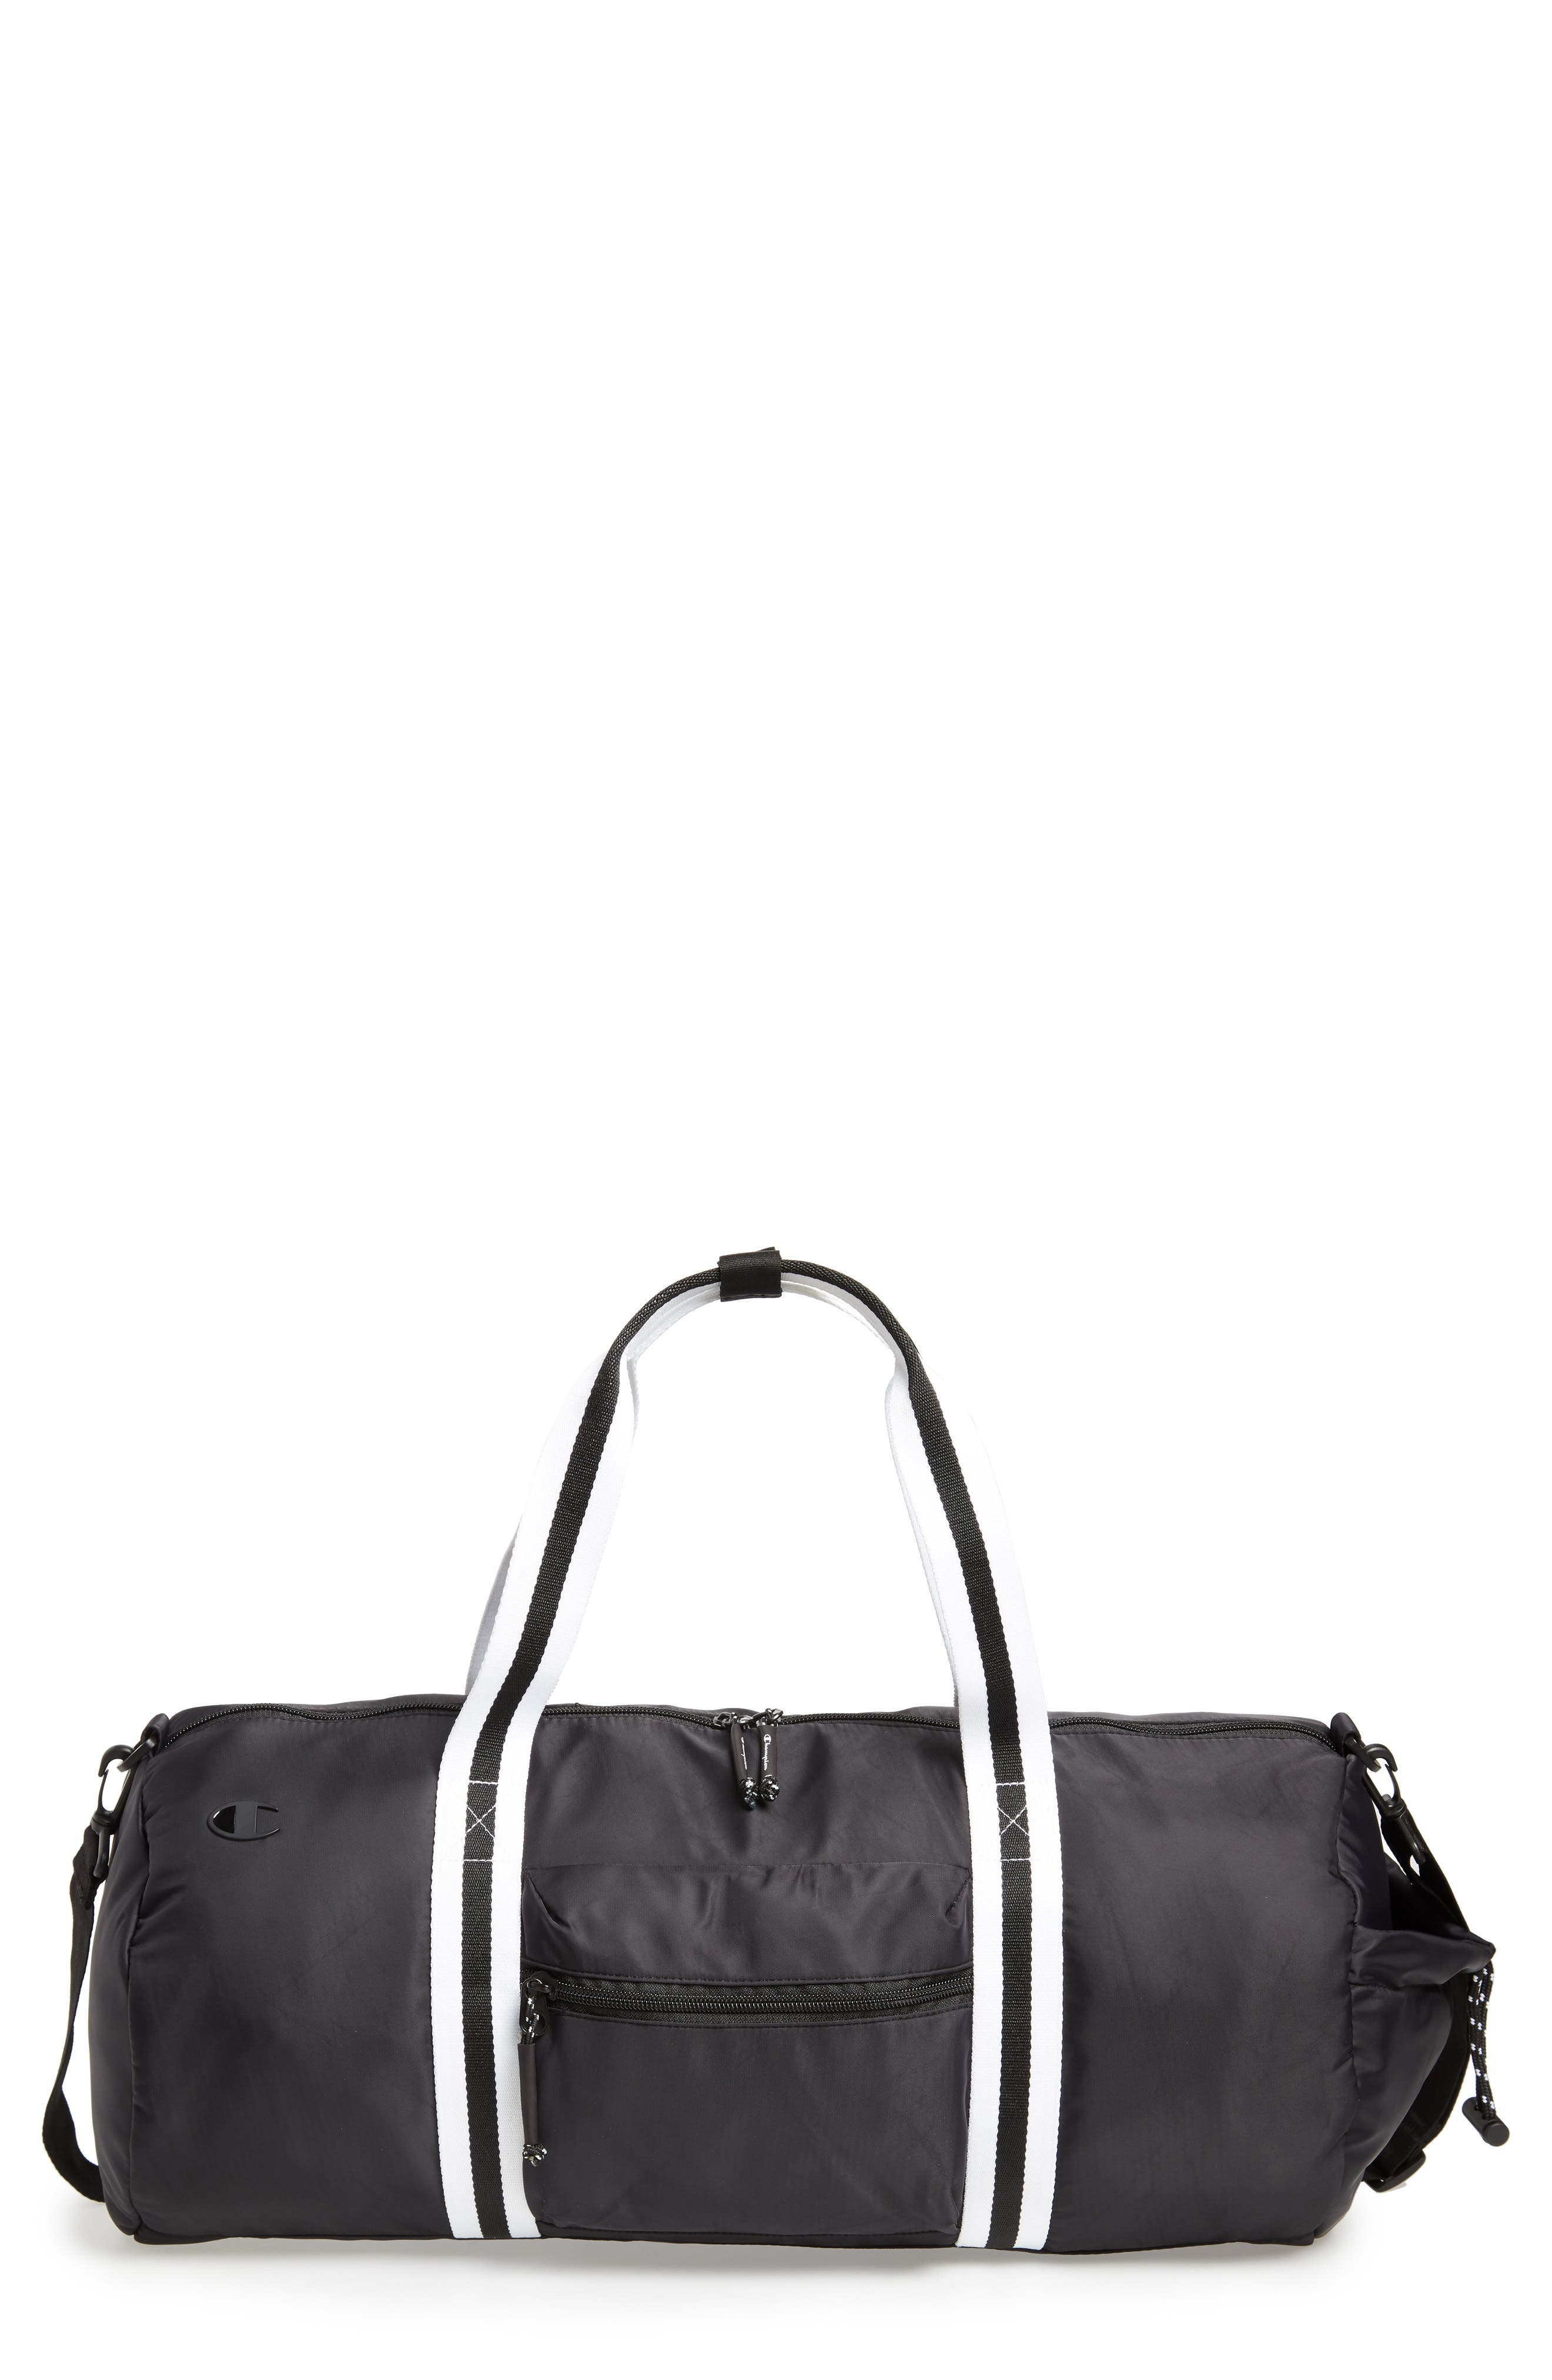 Free Form Duffel Bag,                         Main,                         color, BLACK